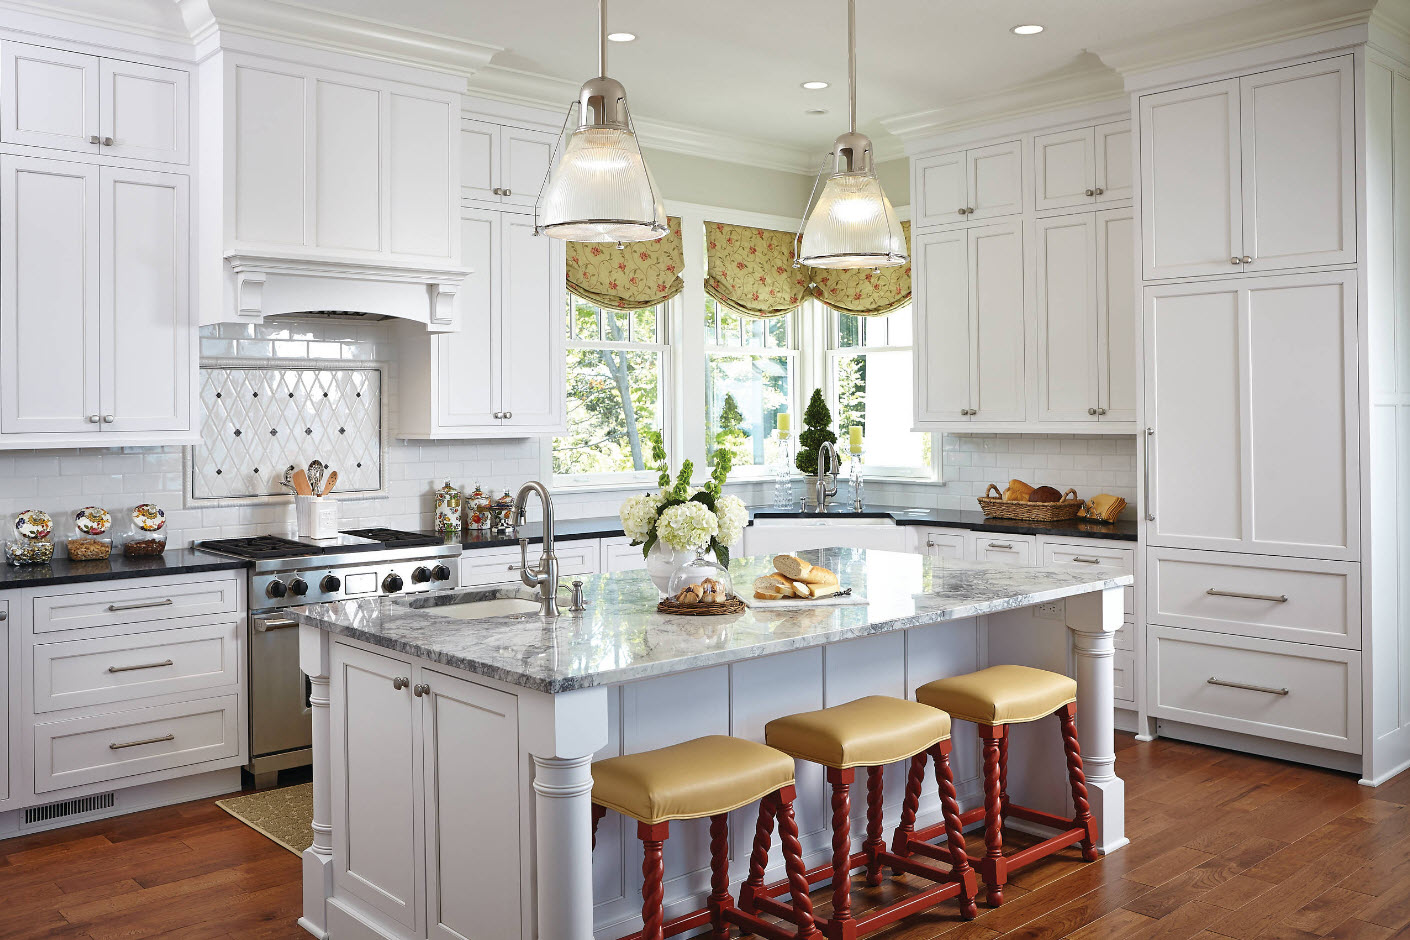 Classic funrished kitchen with glass lamps and figure carving of the furniture